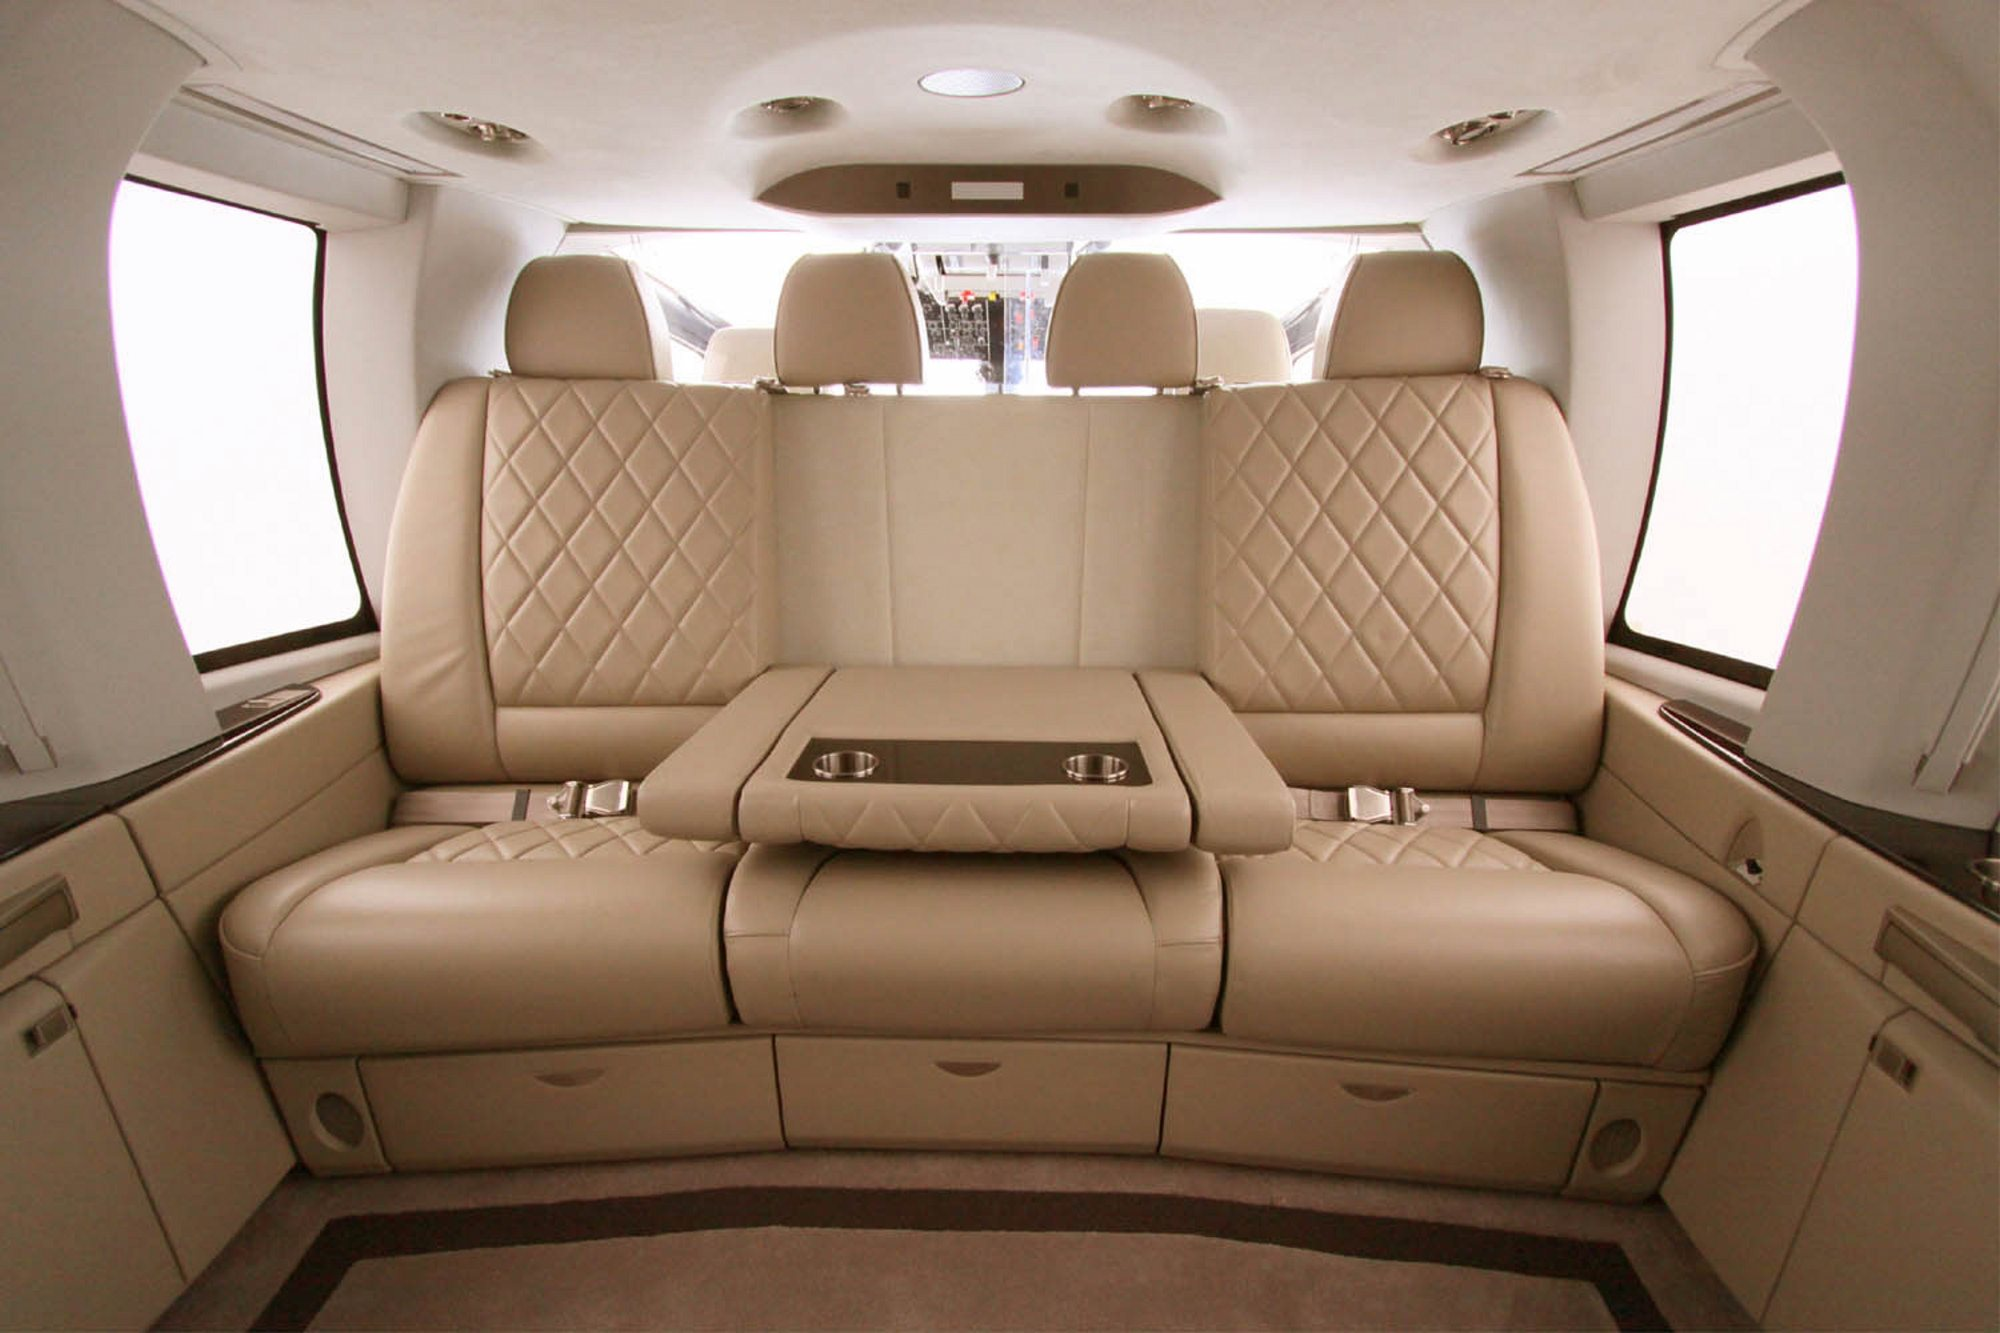 Don Wood Athens >> Helicopter Interiors - Mega Engineering Vehicle